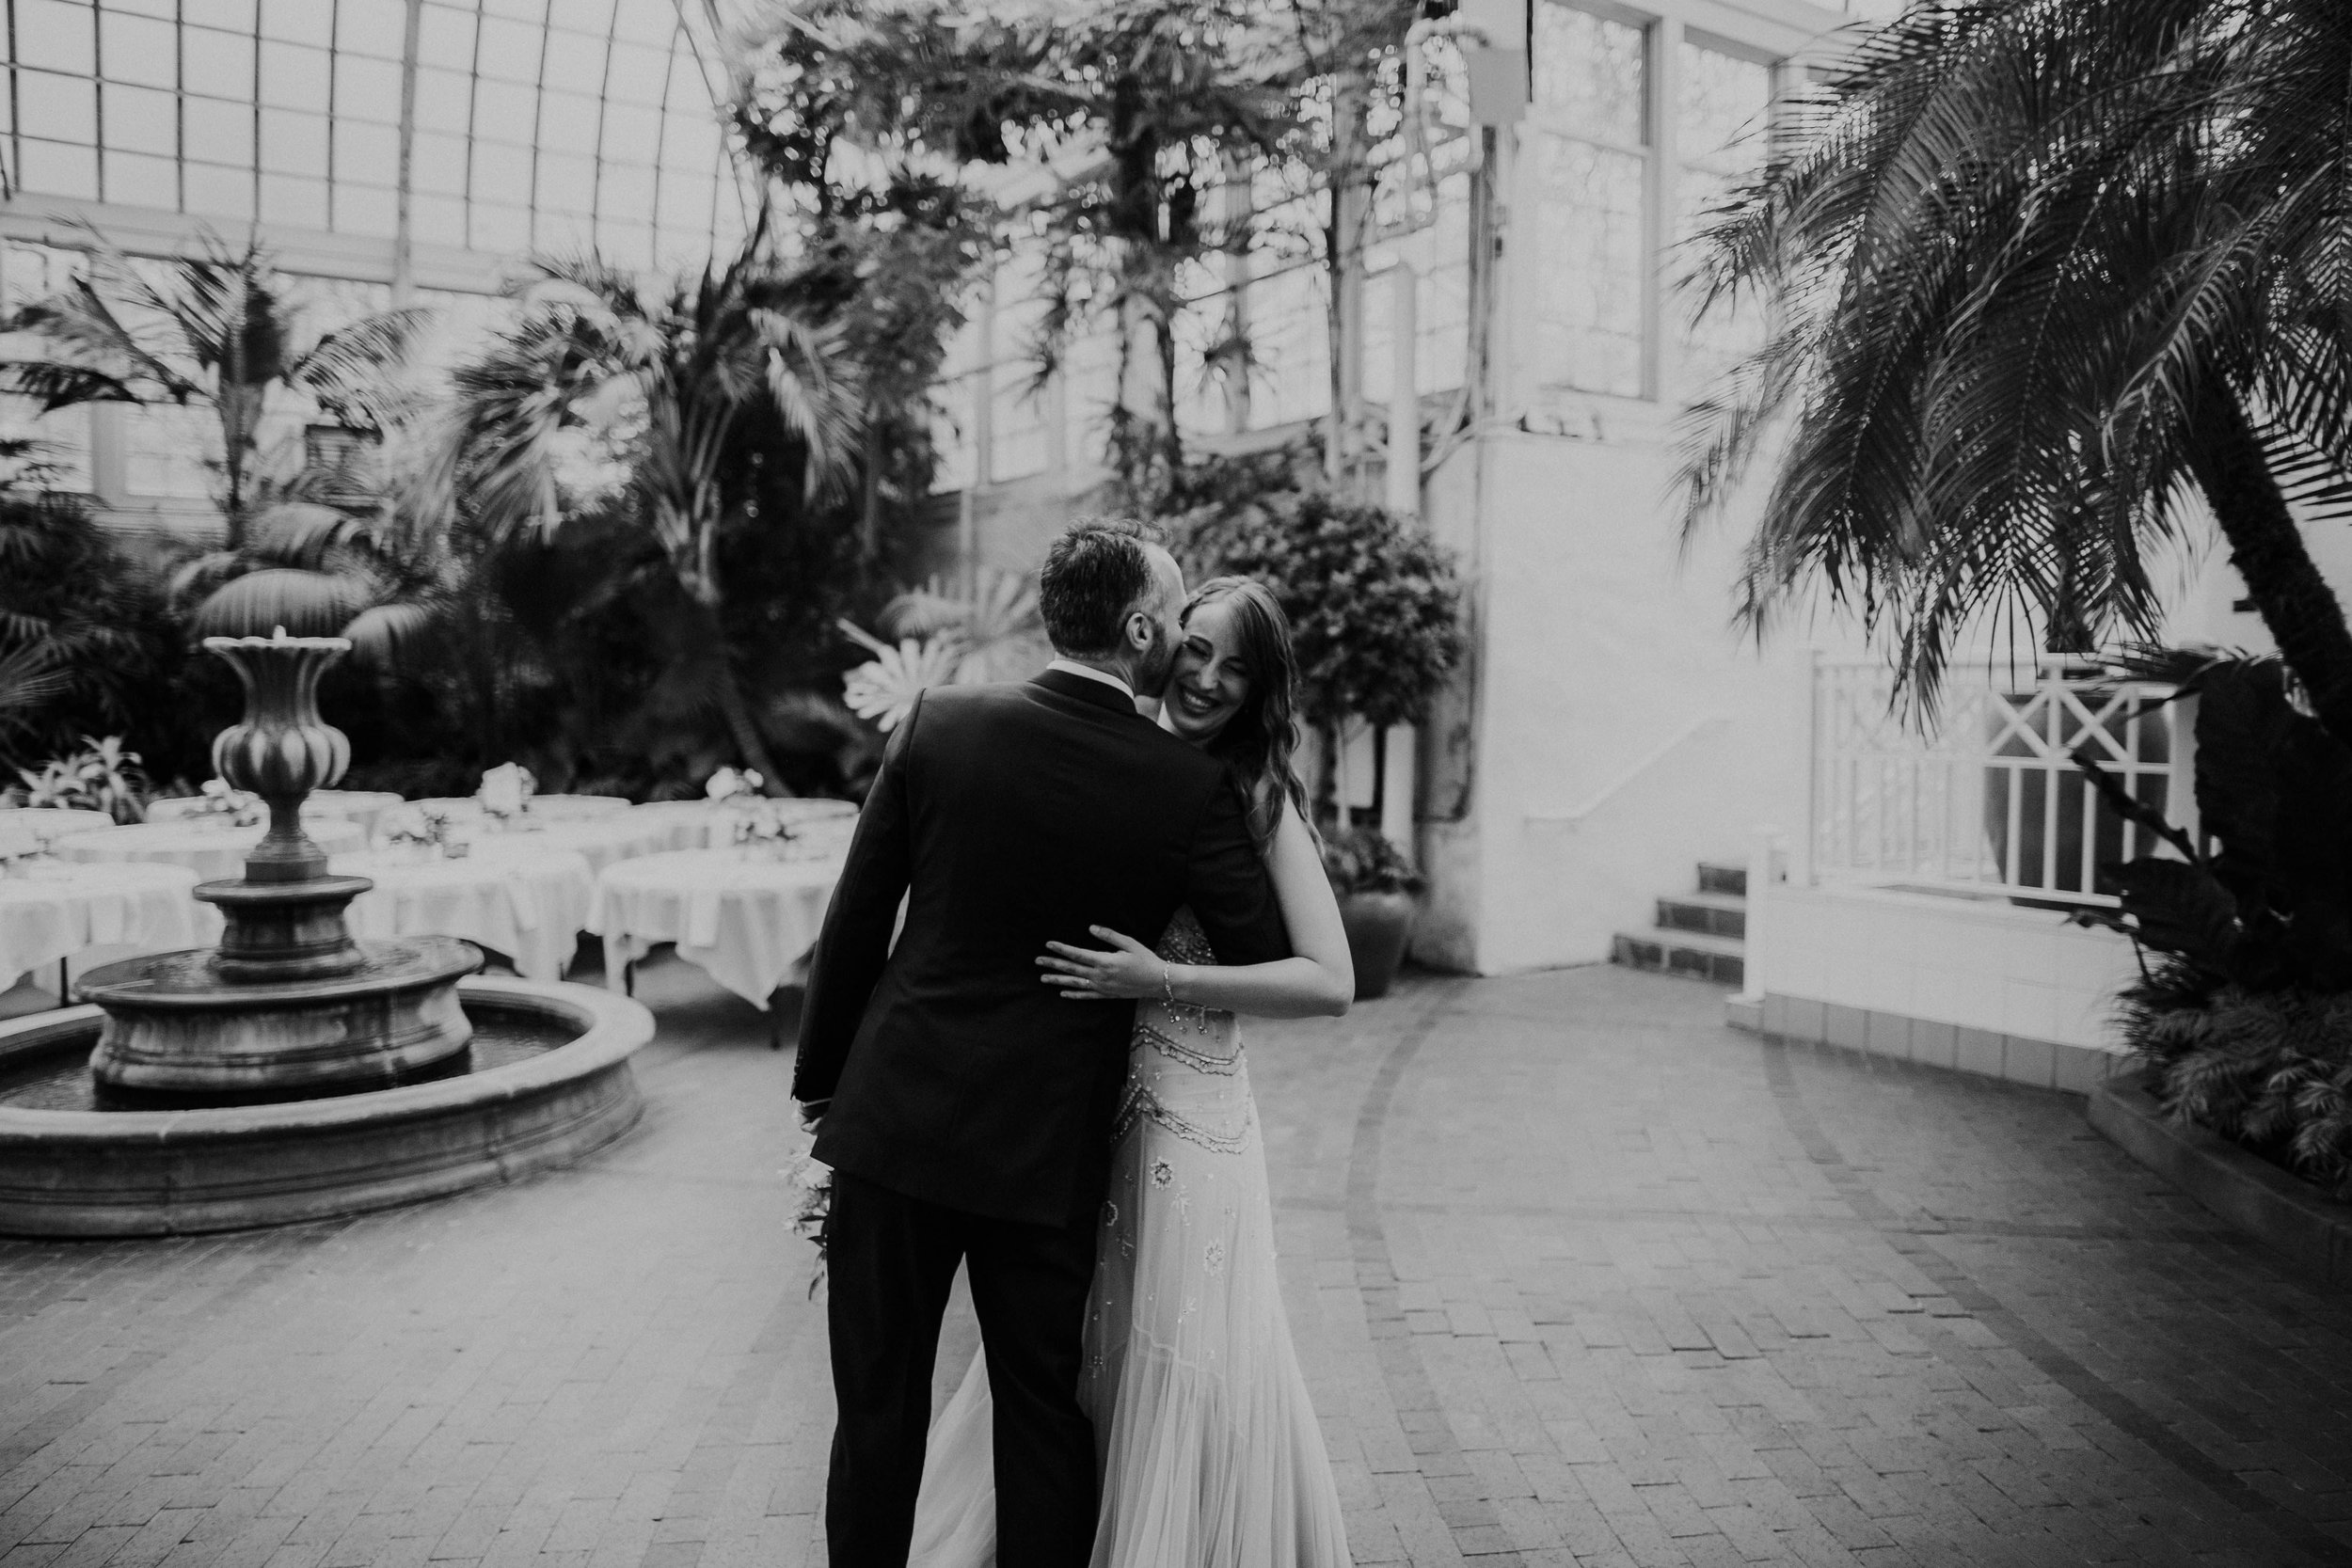 franklin park conservatory wedding columbus ohio wedding photographer grace e jones photography230.jpg